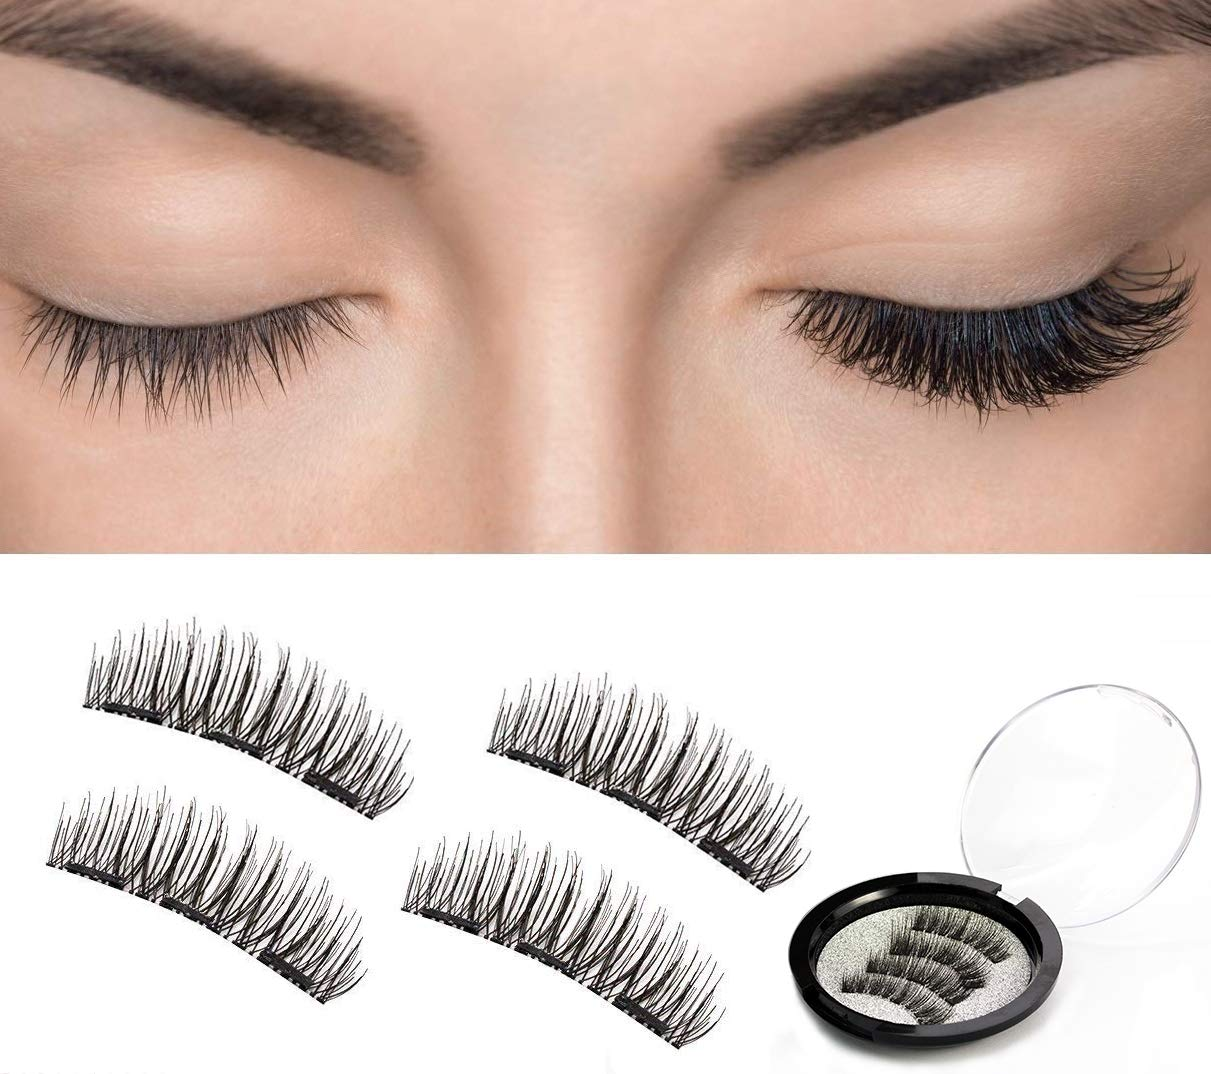 9c57a5d9af8 False Eyelashes, Mijiao 3D Magnetic Eyelashes Natural Look Handmade  Reusable Free Glue & Long Double Ultra Thin Magnet Fake Lashes - 4 Pieces:  Amazon.co.uk: ...